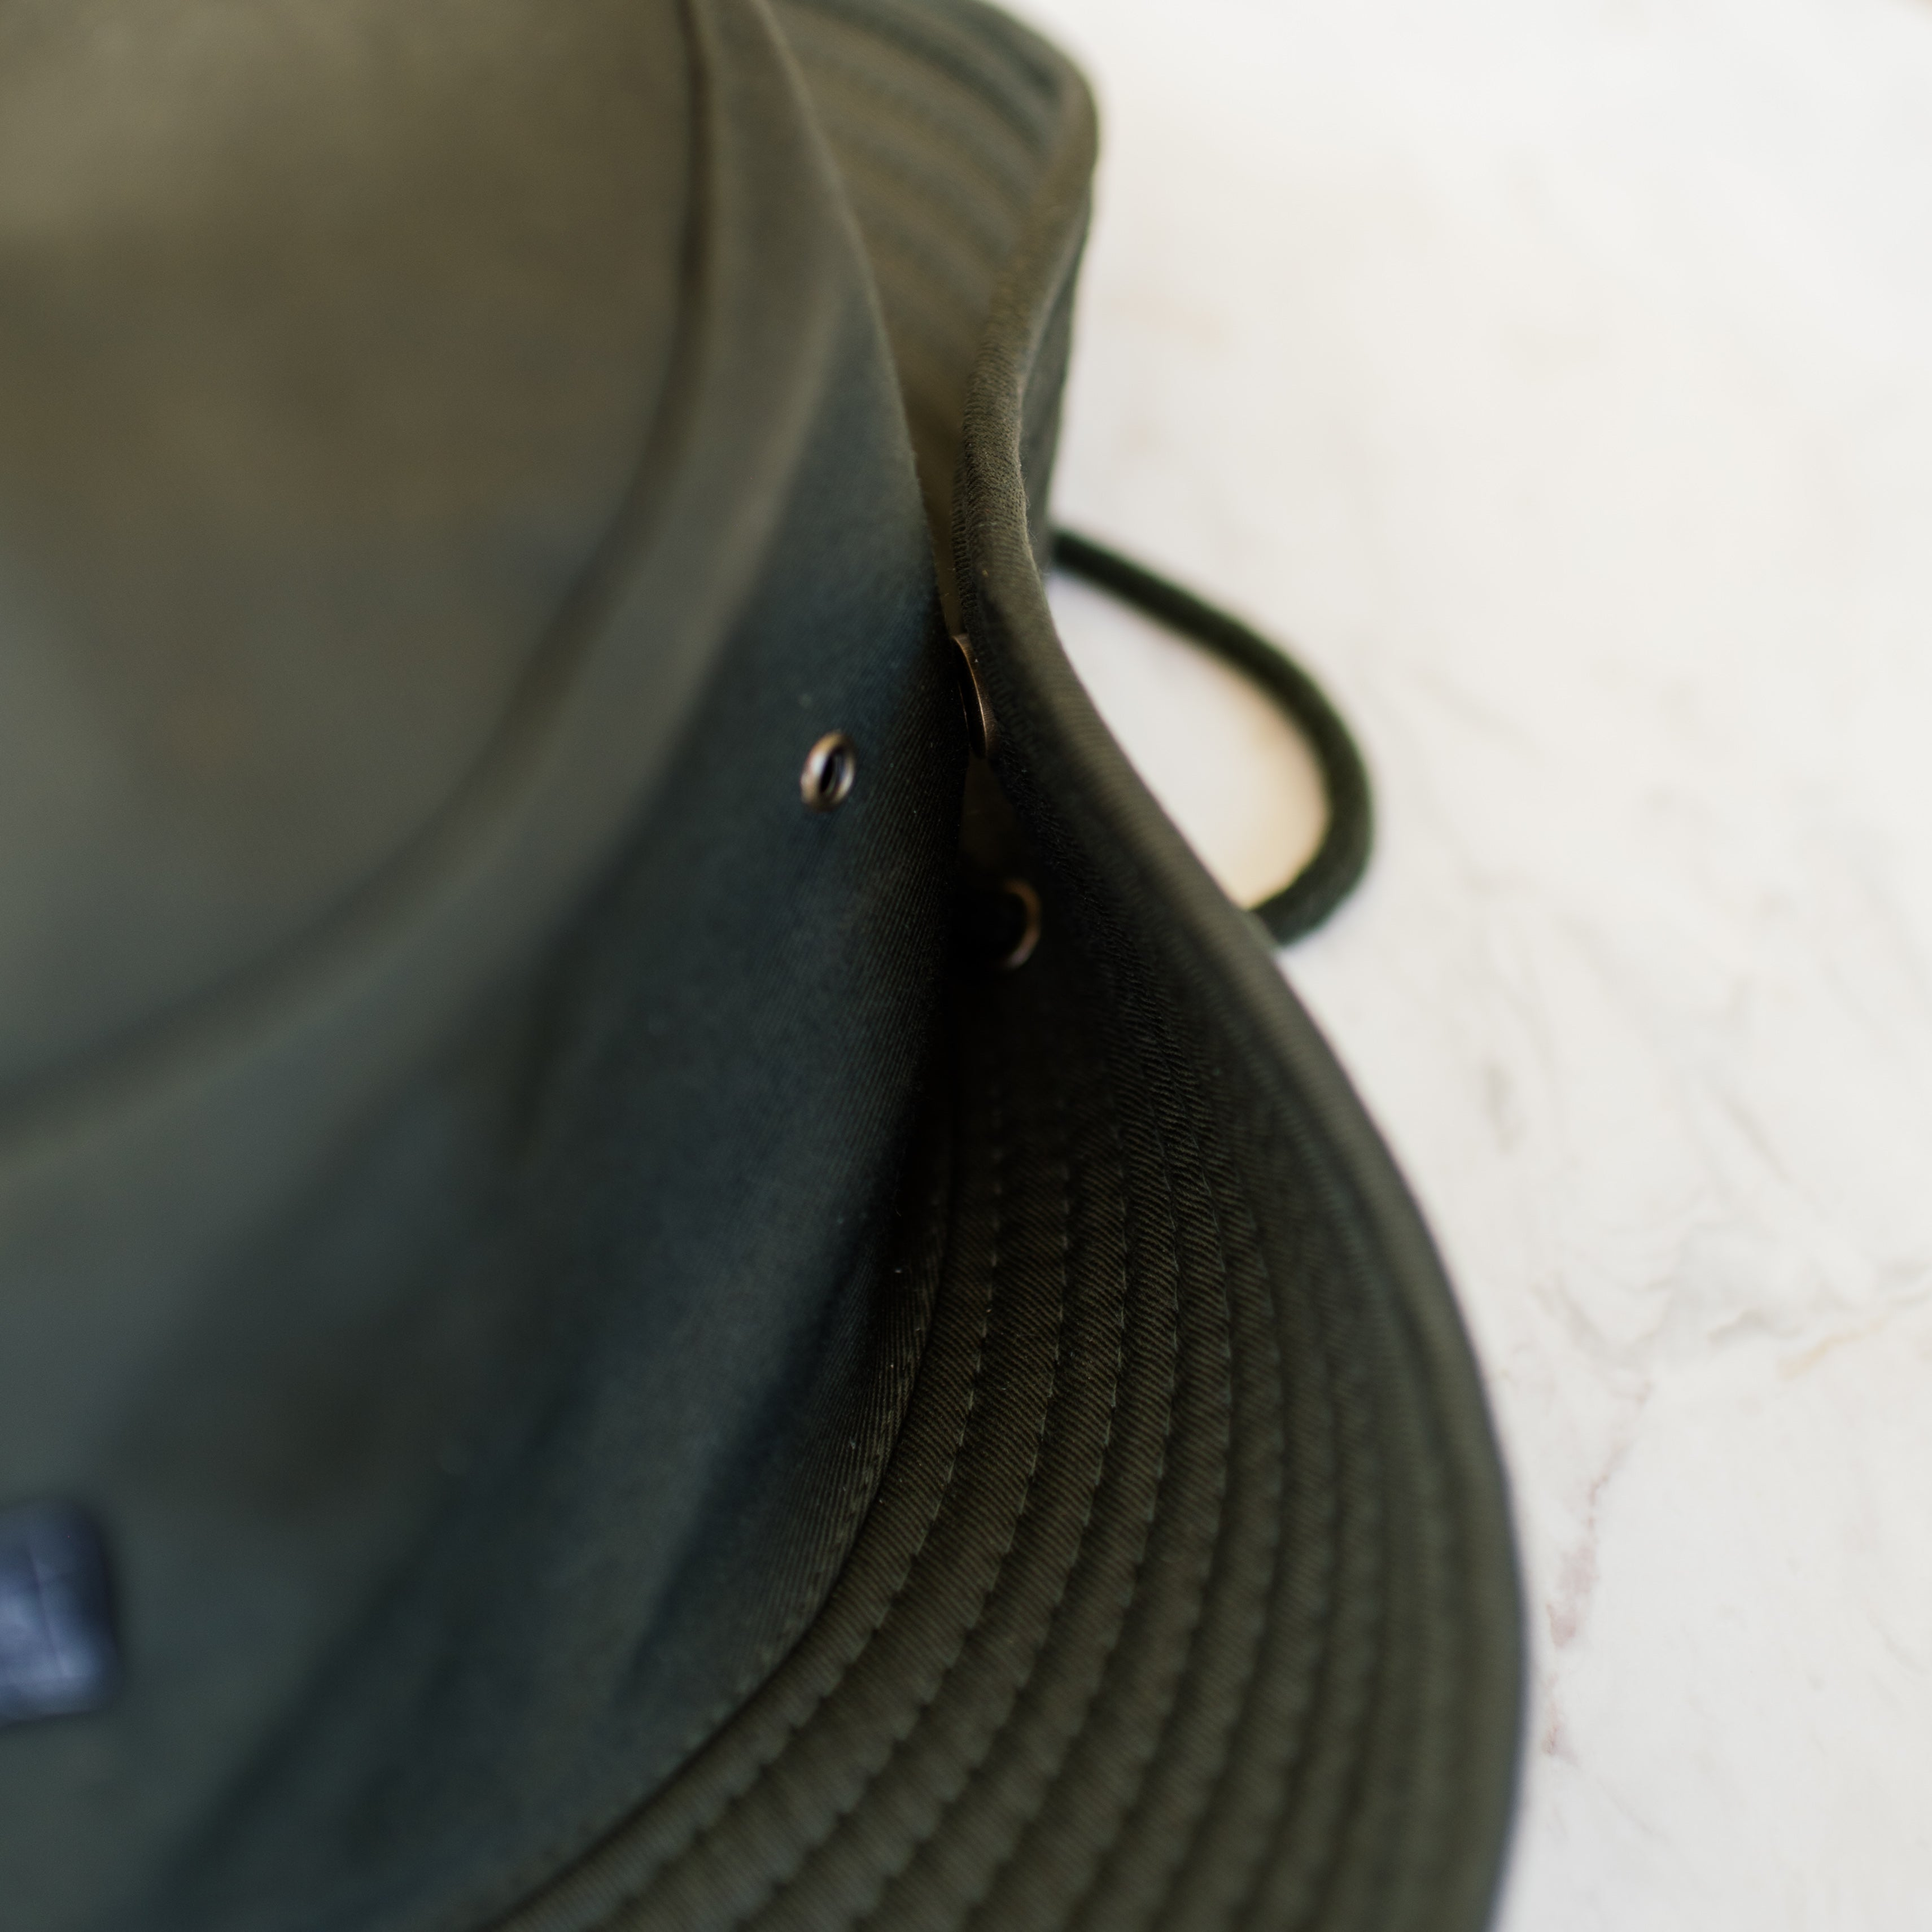 Olive Venture Wide Brim Hat - Stokedthebrand. Lifestyle products for outdoor adventures. Made in South Africa